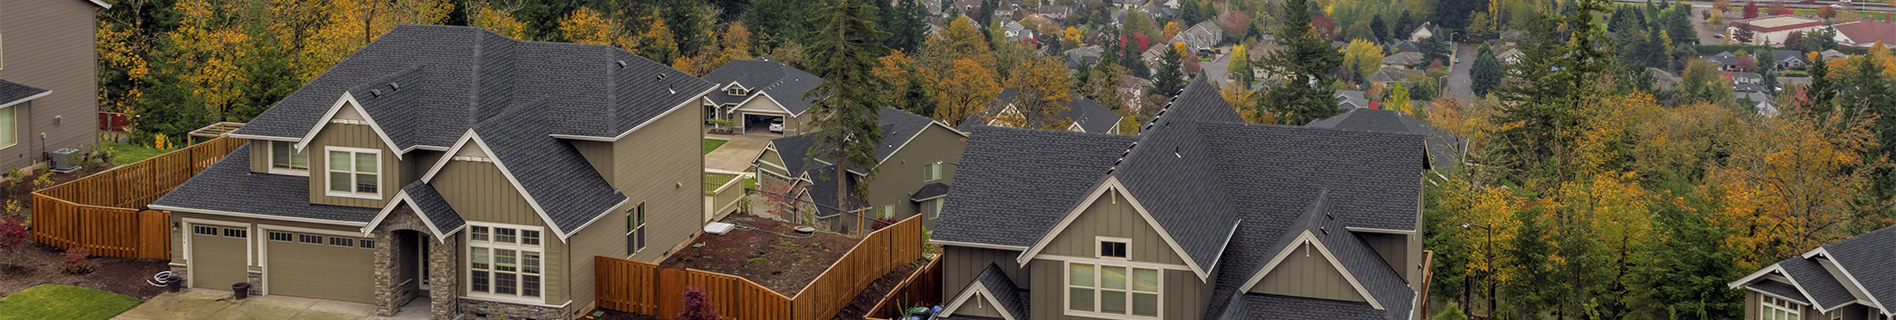 page-header-image_0000_HappyValleyResidentialHomesinFall